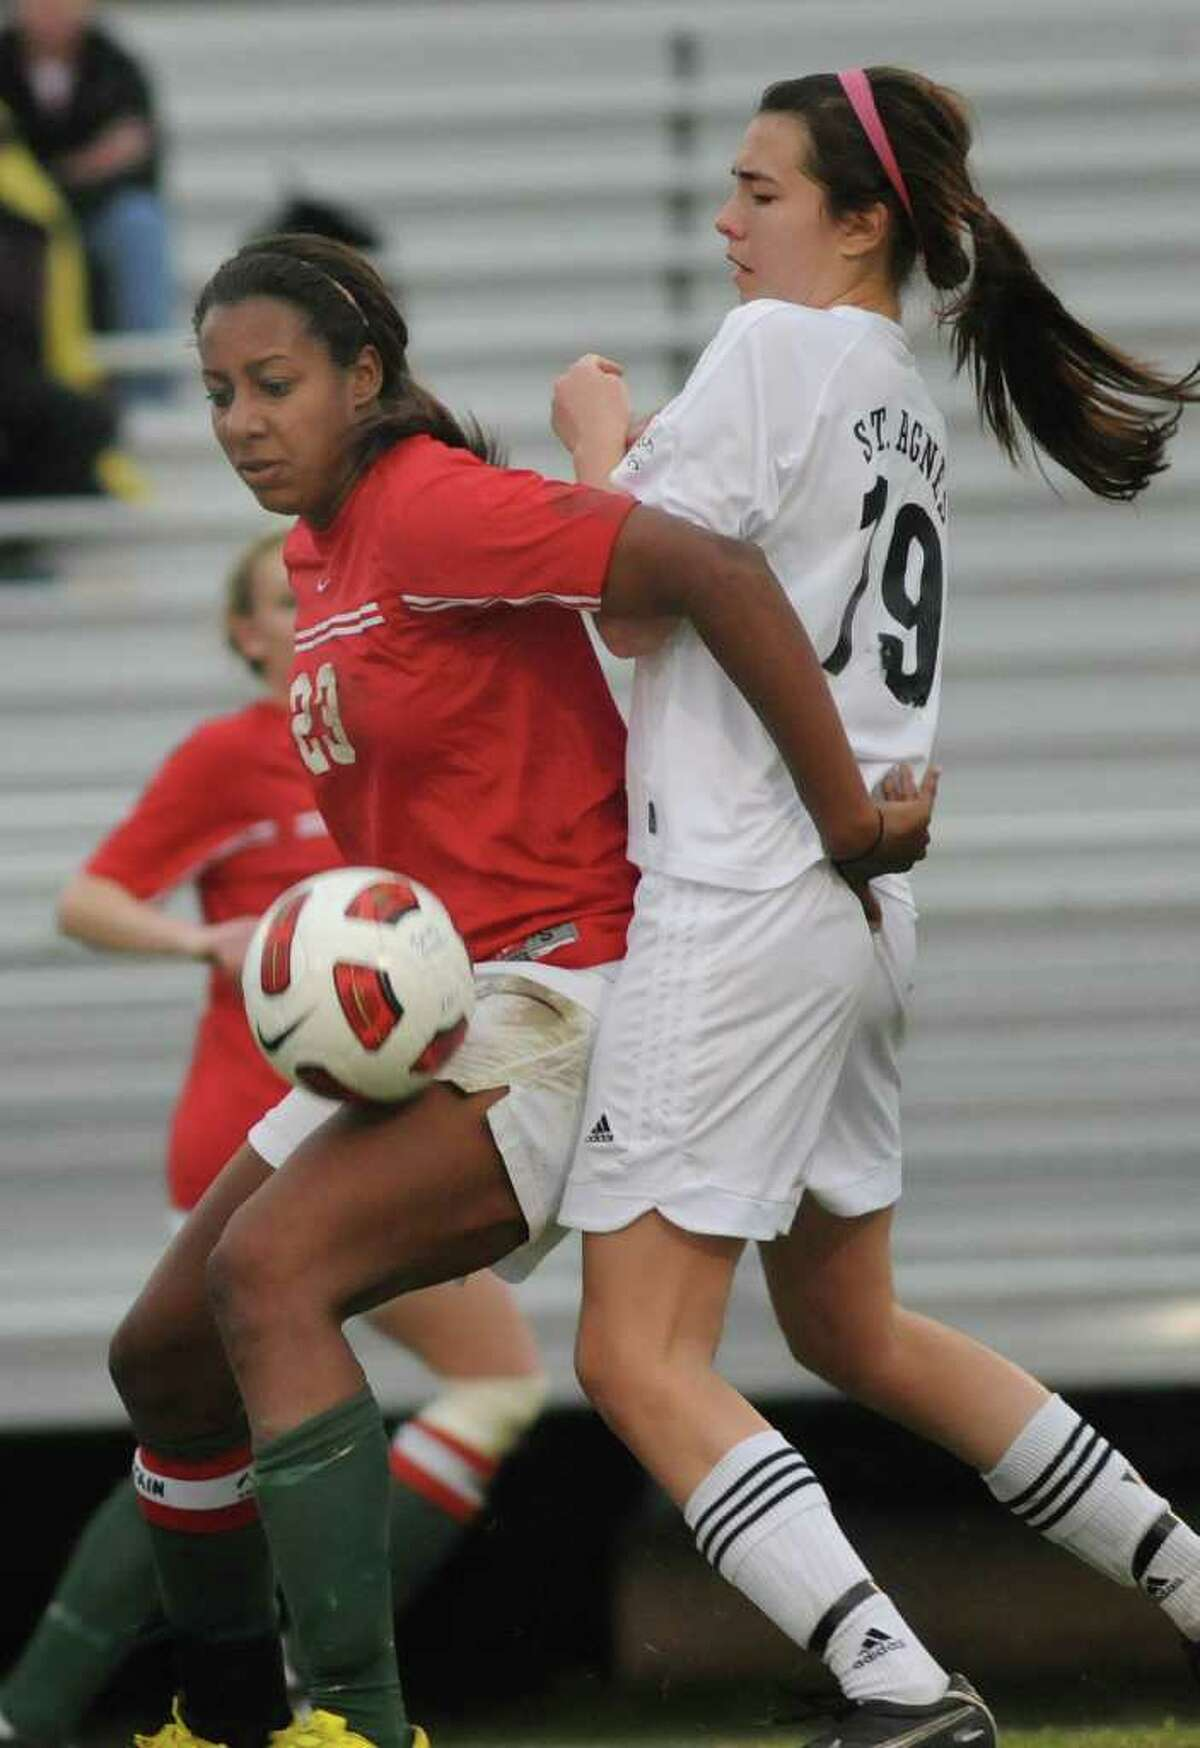 The Woodlands junior forward Lexi Ricketts, left, works against St. Agnes junior defender Caroline Casey during their match at the 2011 Lady Highlander Invitational. Photo by Jerry Baker